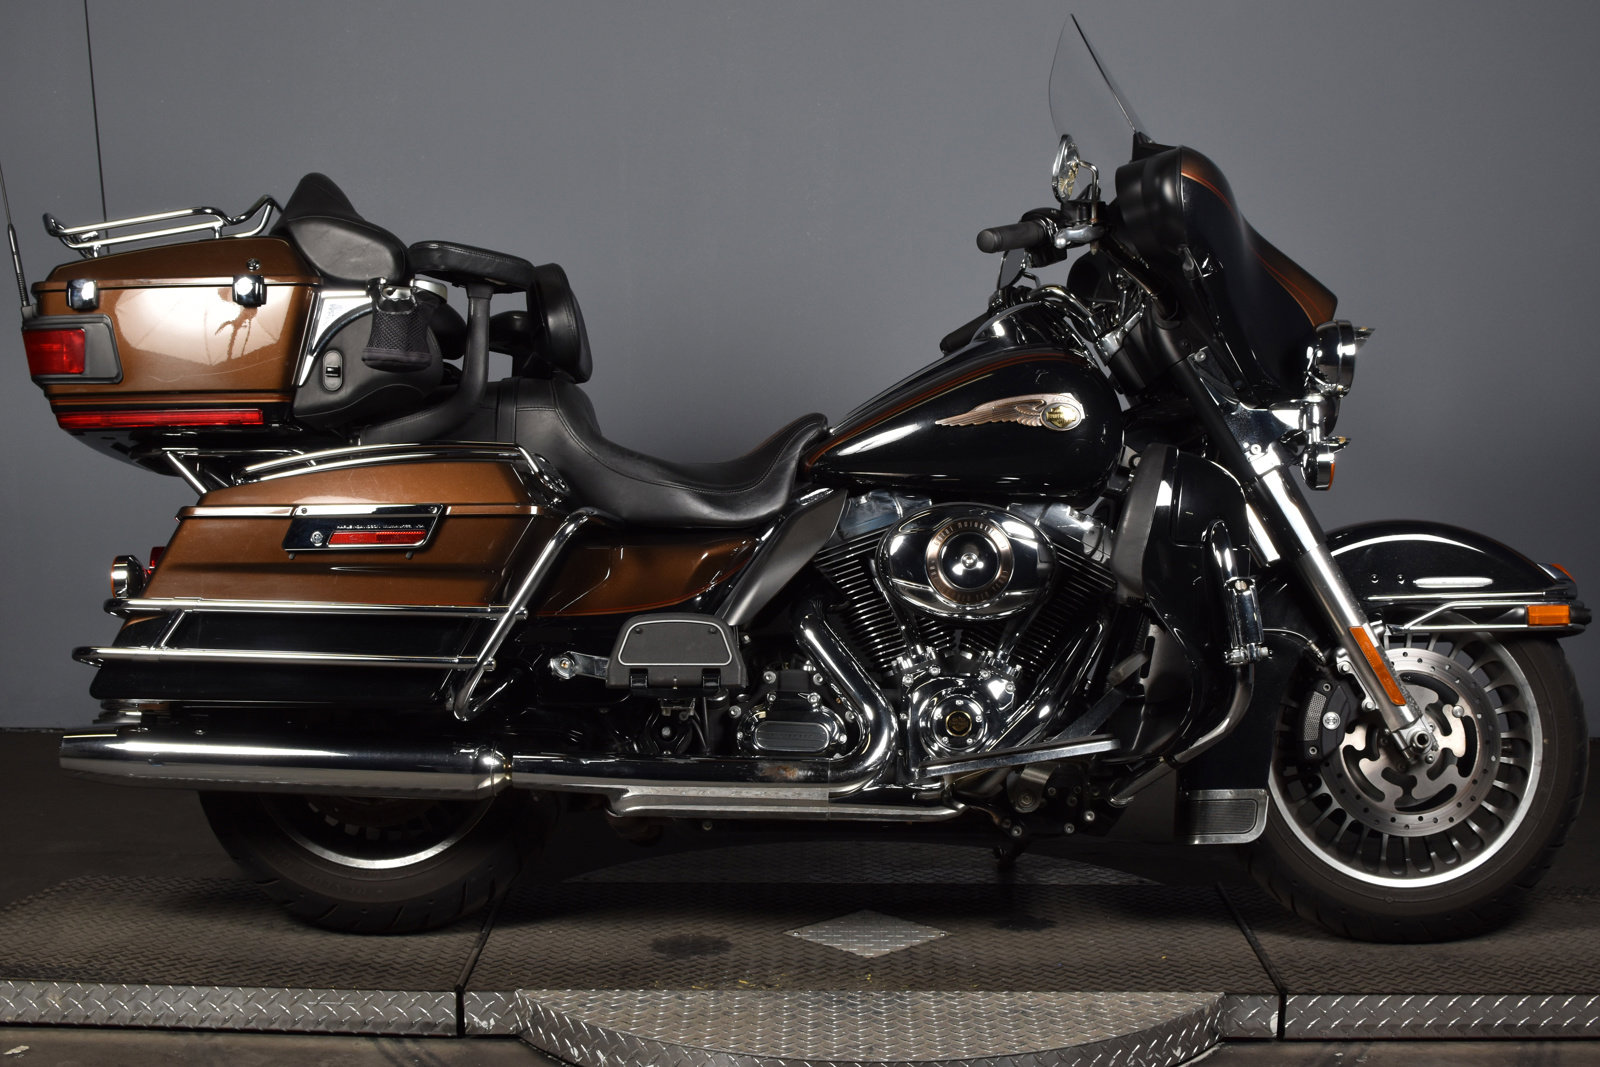 Pre-Owned 2013 Harley-Davidson Ultra Limited 110th Anniversary FLHTK